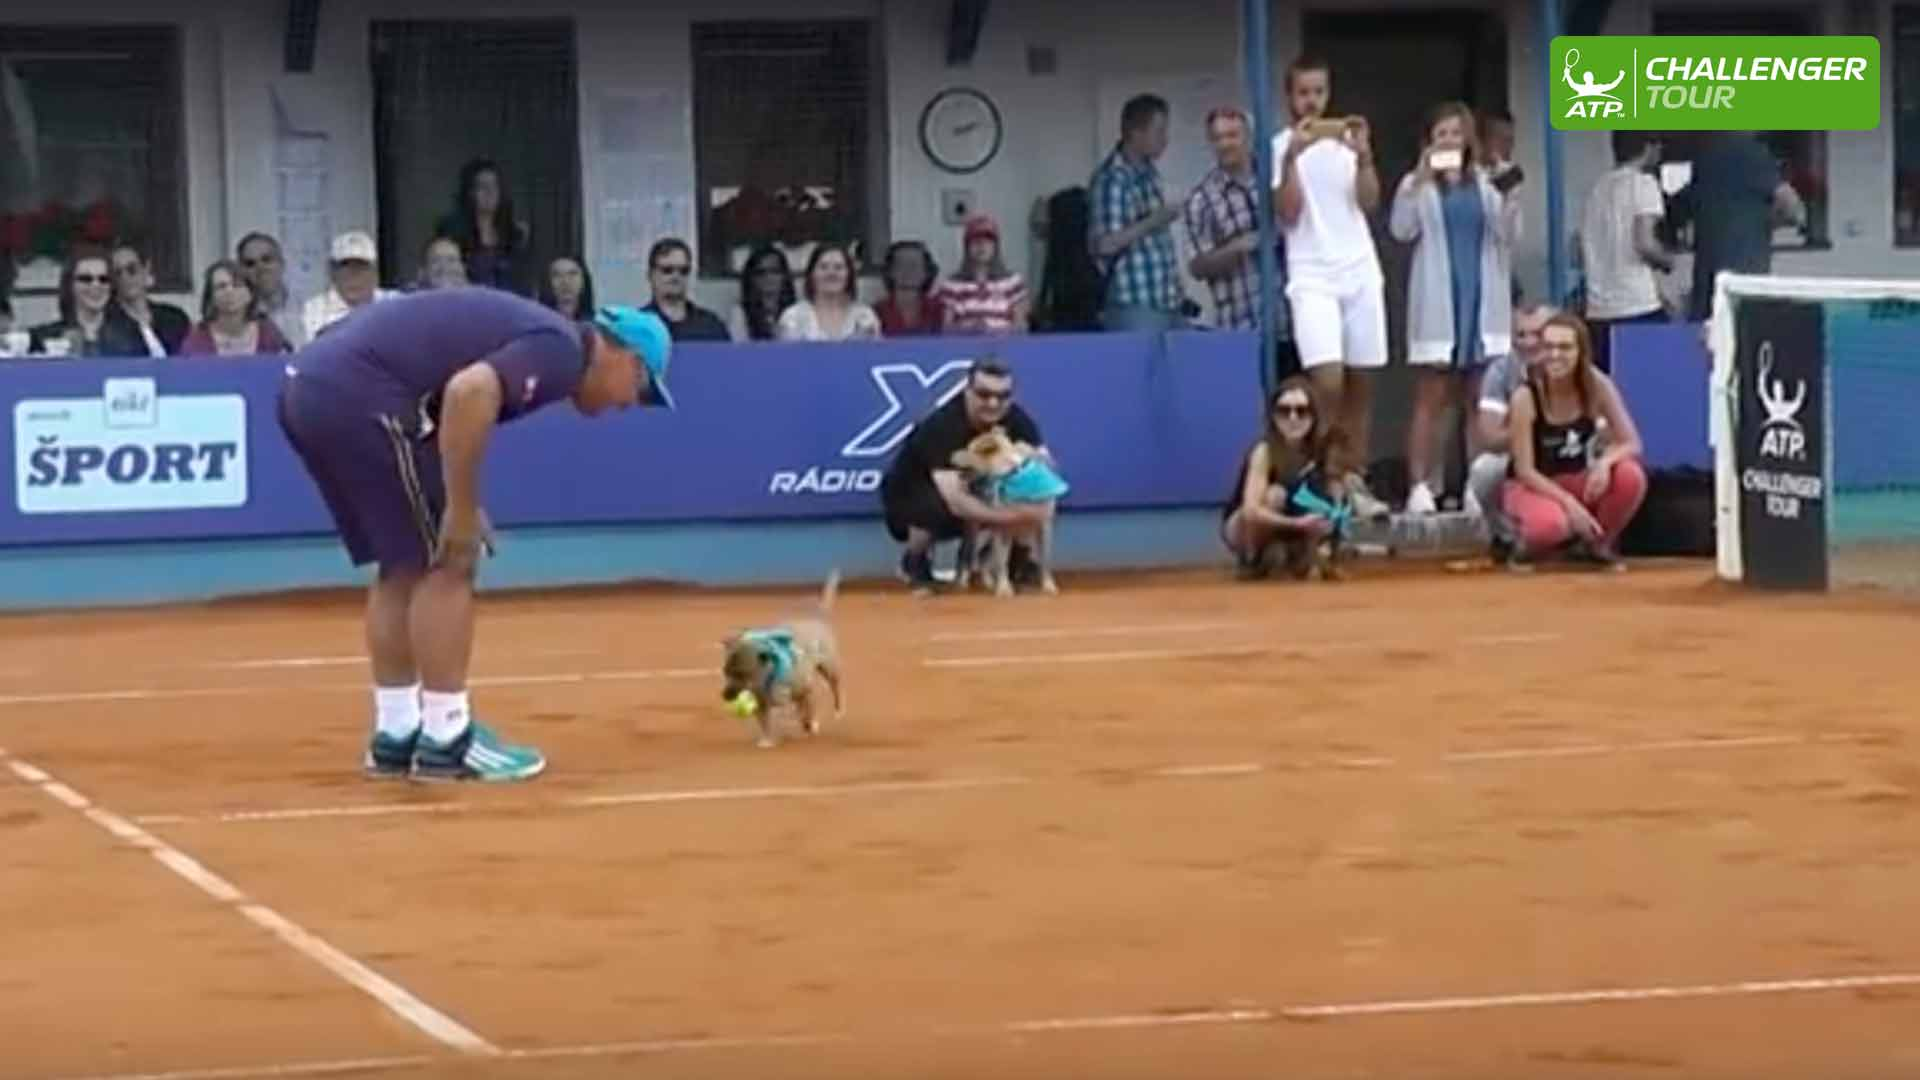 The dogs steal the show at the ATP Challenger Tour event in Poprad Tatry.